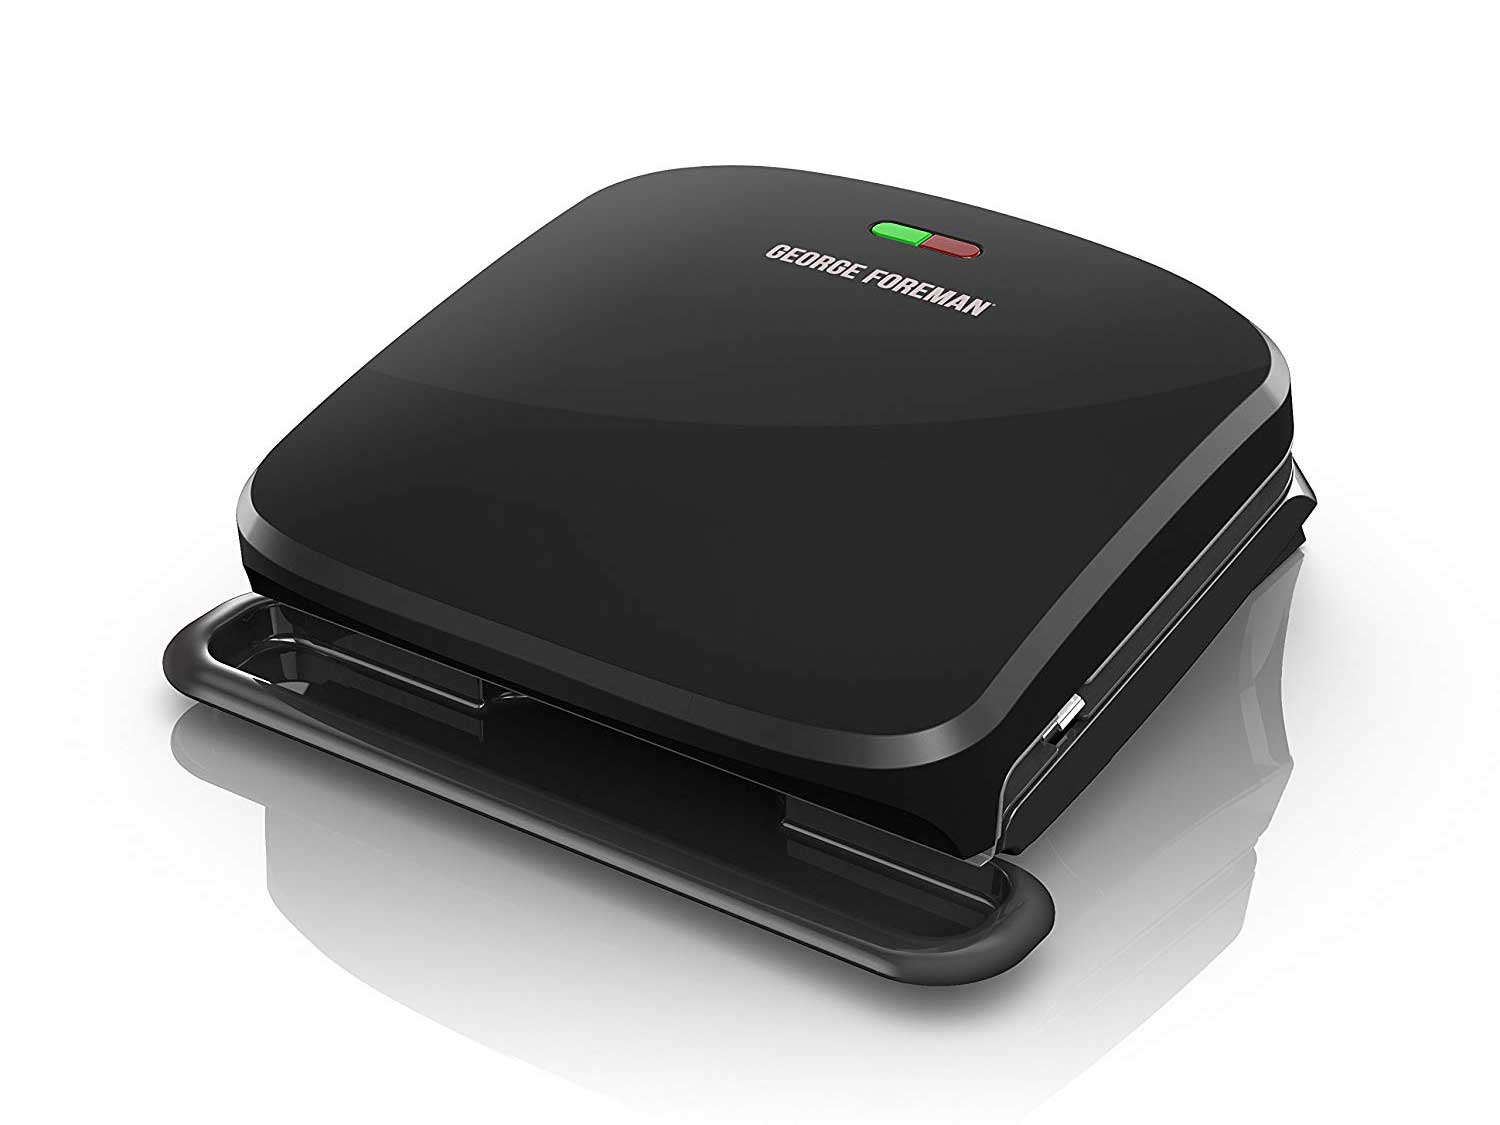 George Foreman 4-Serving Removable Plate Grill and Panini Press, Black